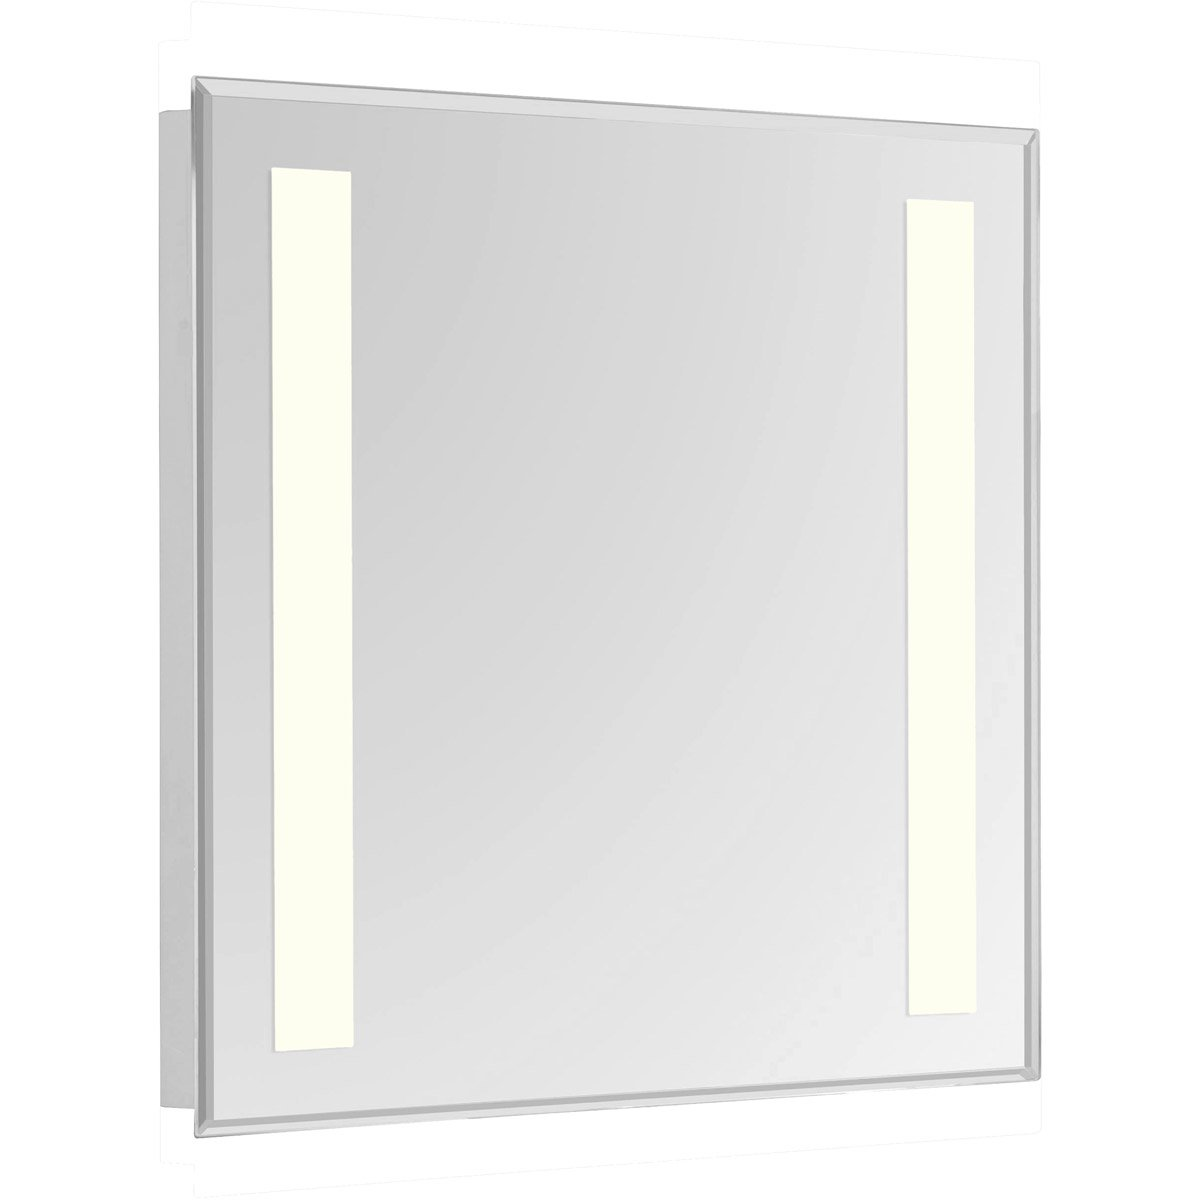 Nova 40 X 32 Hardwired Glossy White Led Wall Mirror (Mre-6305) Led Mirror